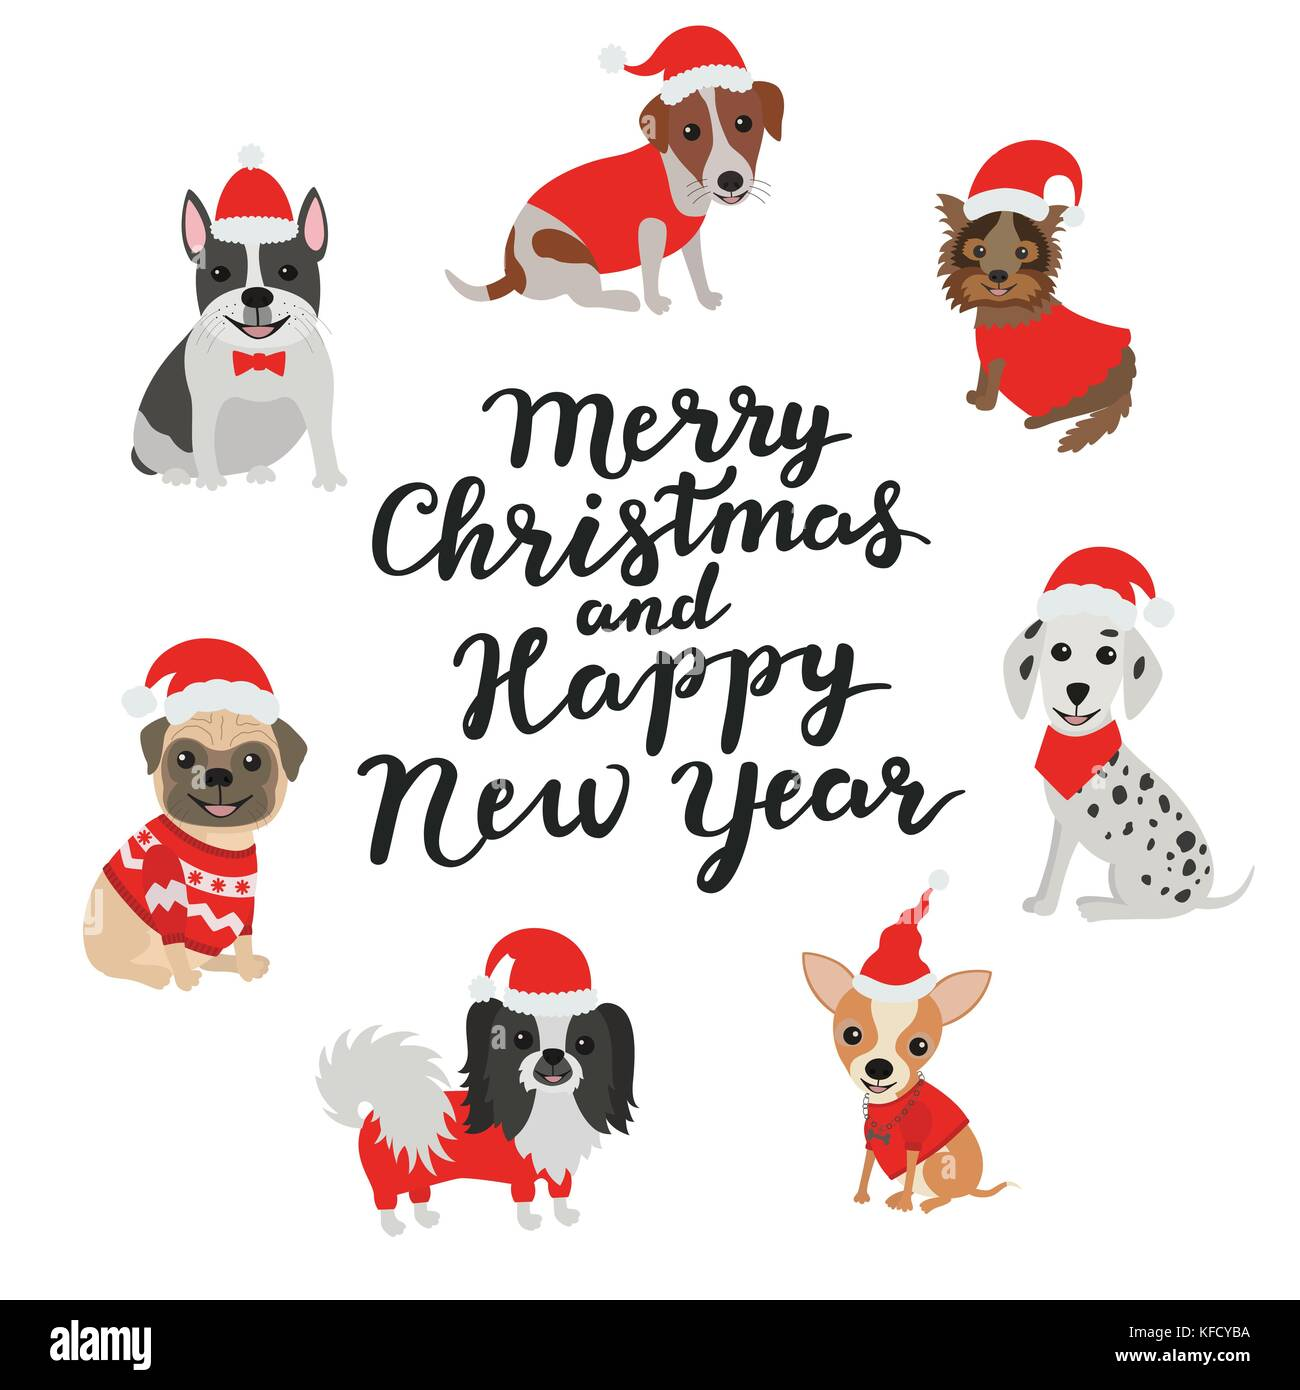 merry christmas and happy new year happy dogs in costumes santa claus stock vector